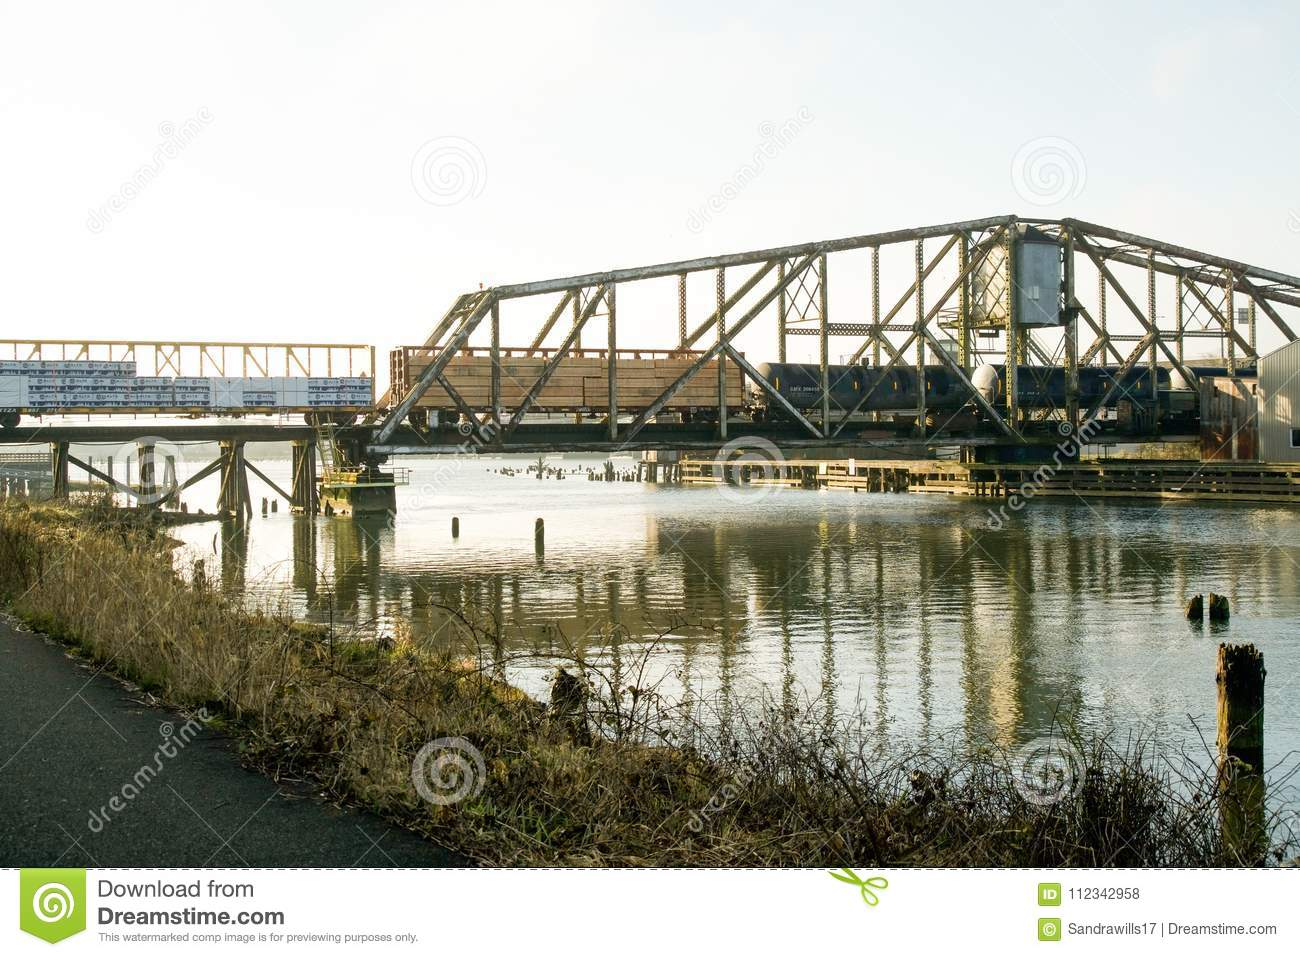 Aberdeen, Washington / USA - March 10, 2018: The Puget Sound & Pacific Railroad Wishkah River Bridge is an important part of Grays